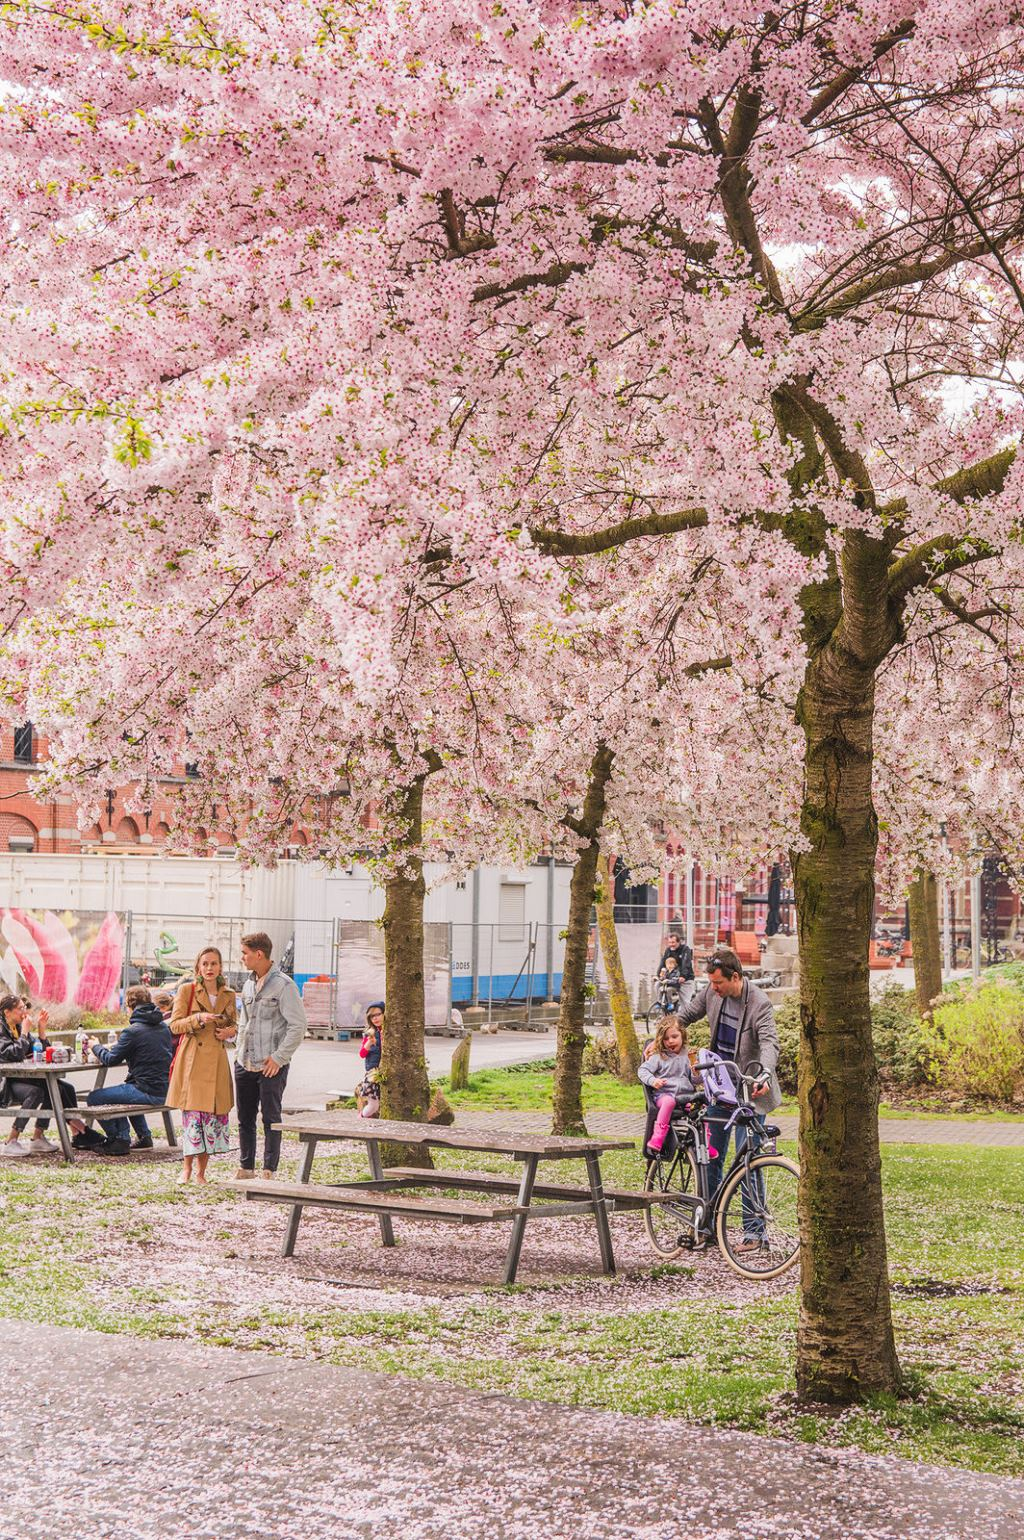 People gather underneath the blossoming cherry trees at Westerpark, Amsterdam